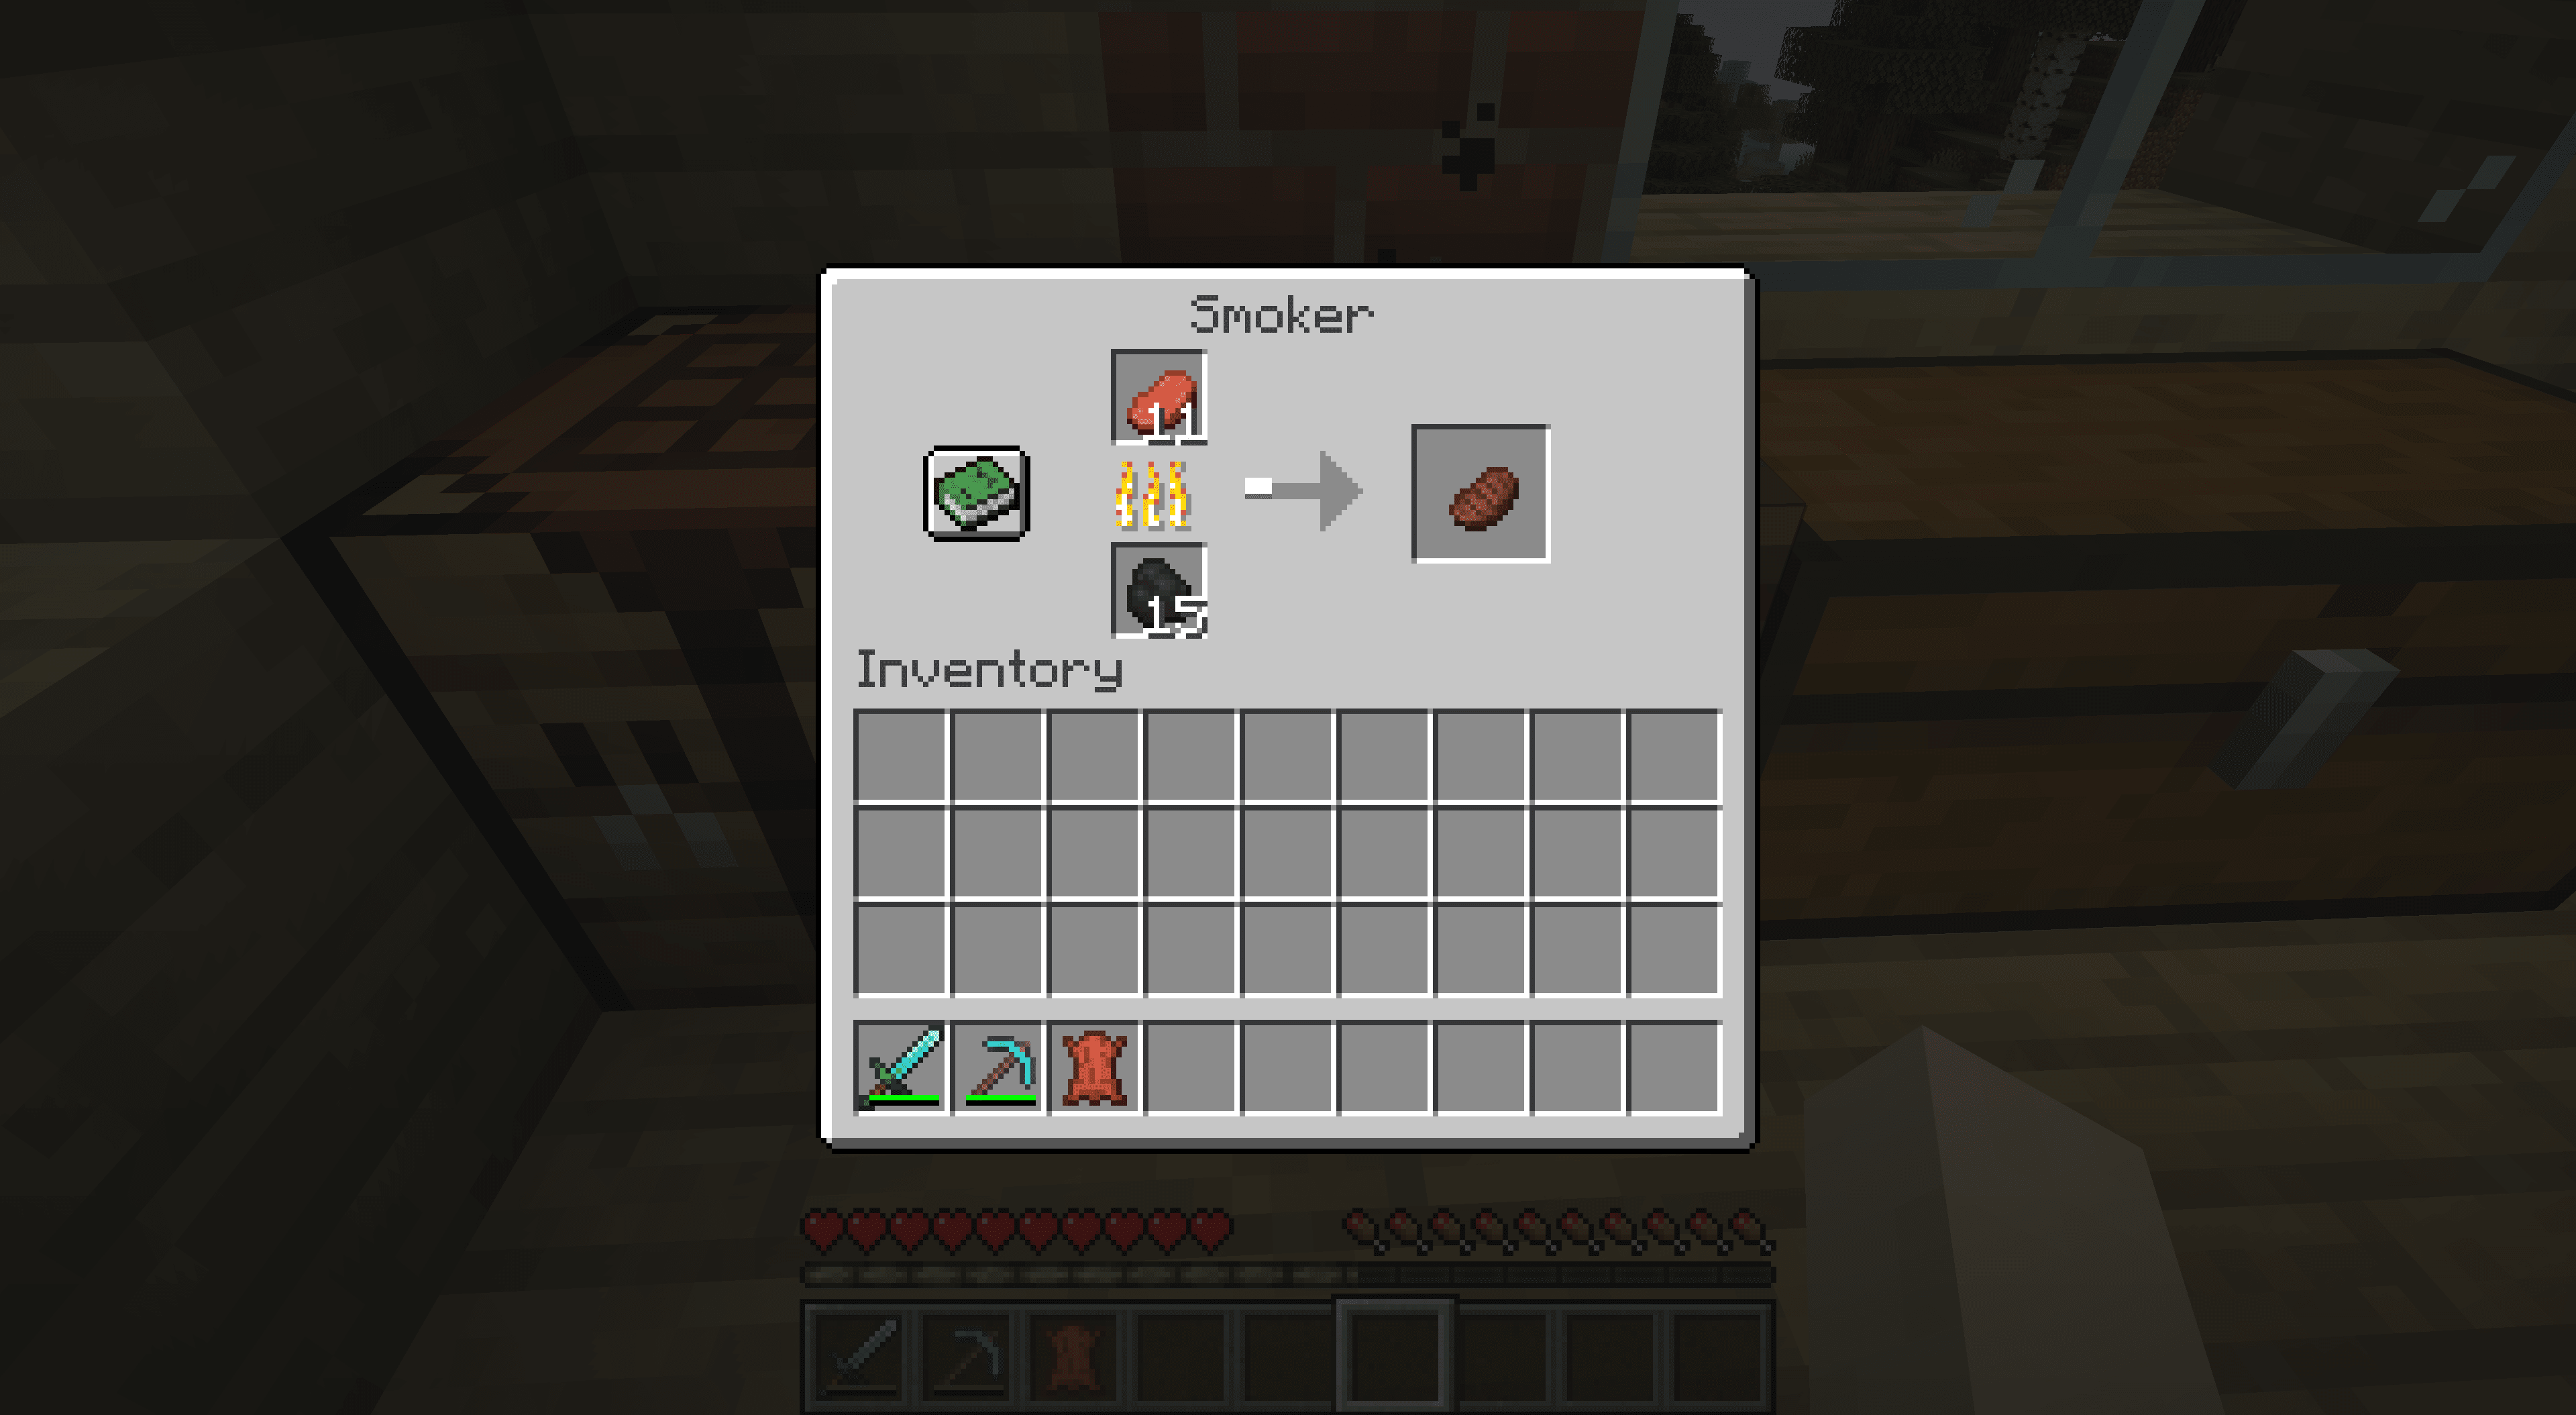 Beef smoking in a smoker in Minecraft.